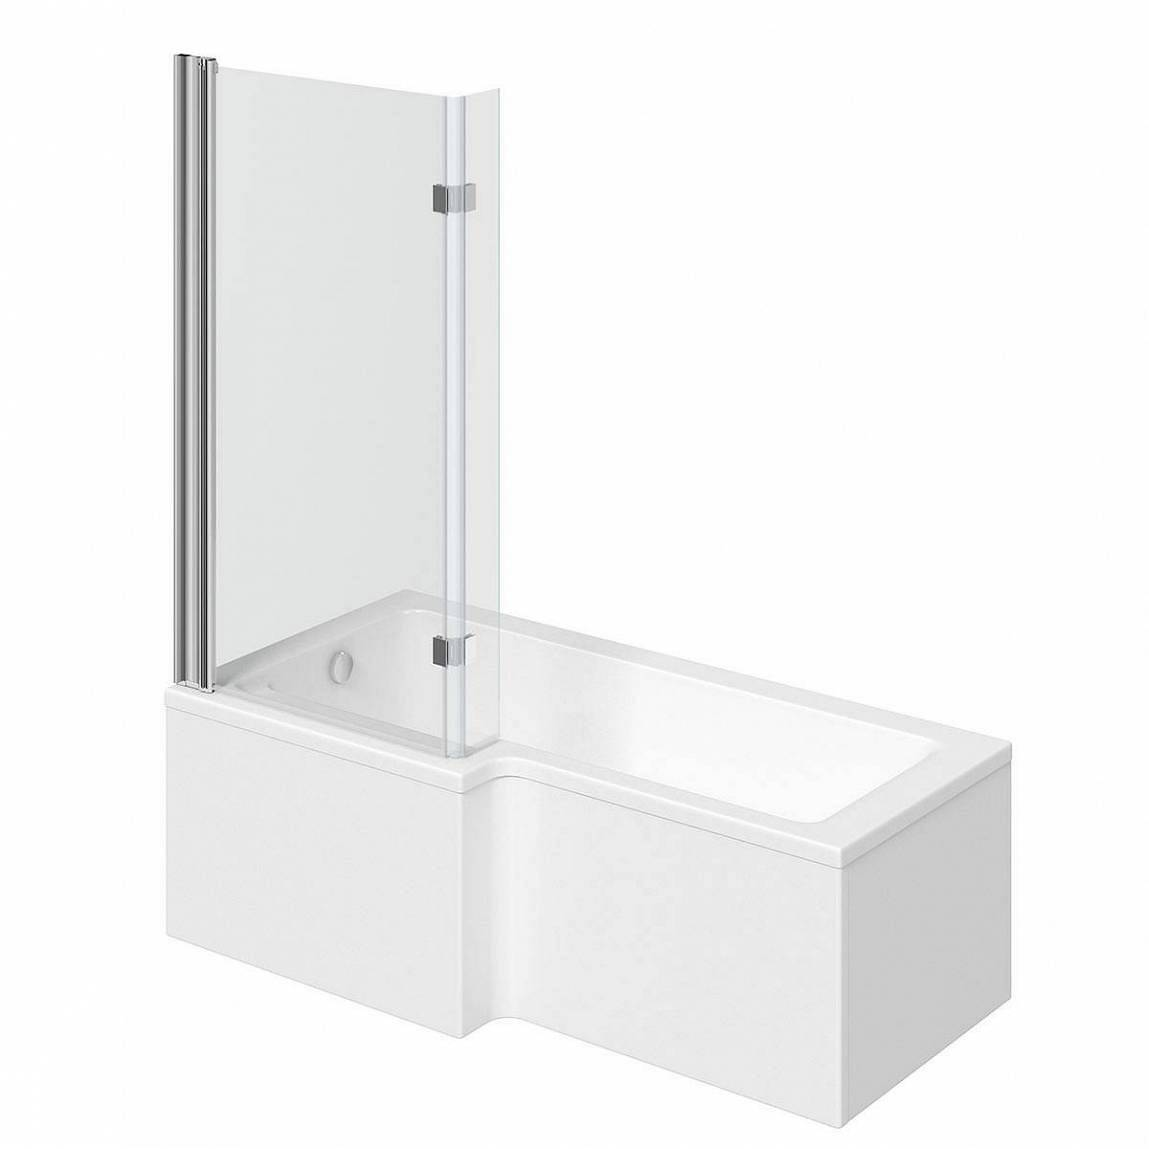 Image of Boston Shower Bath 1700 x 850 LH inc. 8mm Hinged Screen